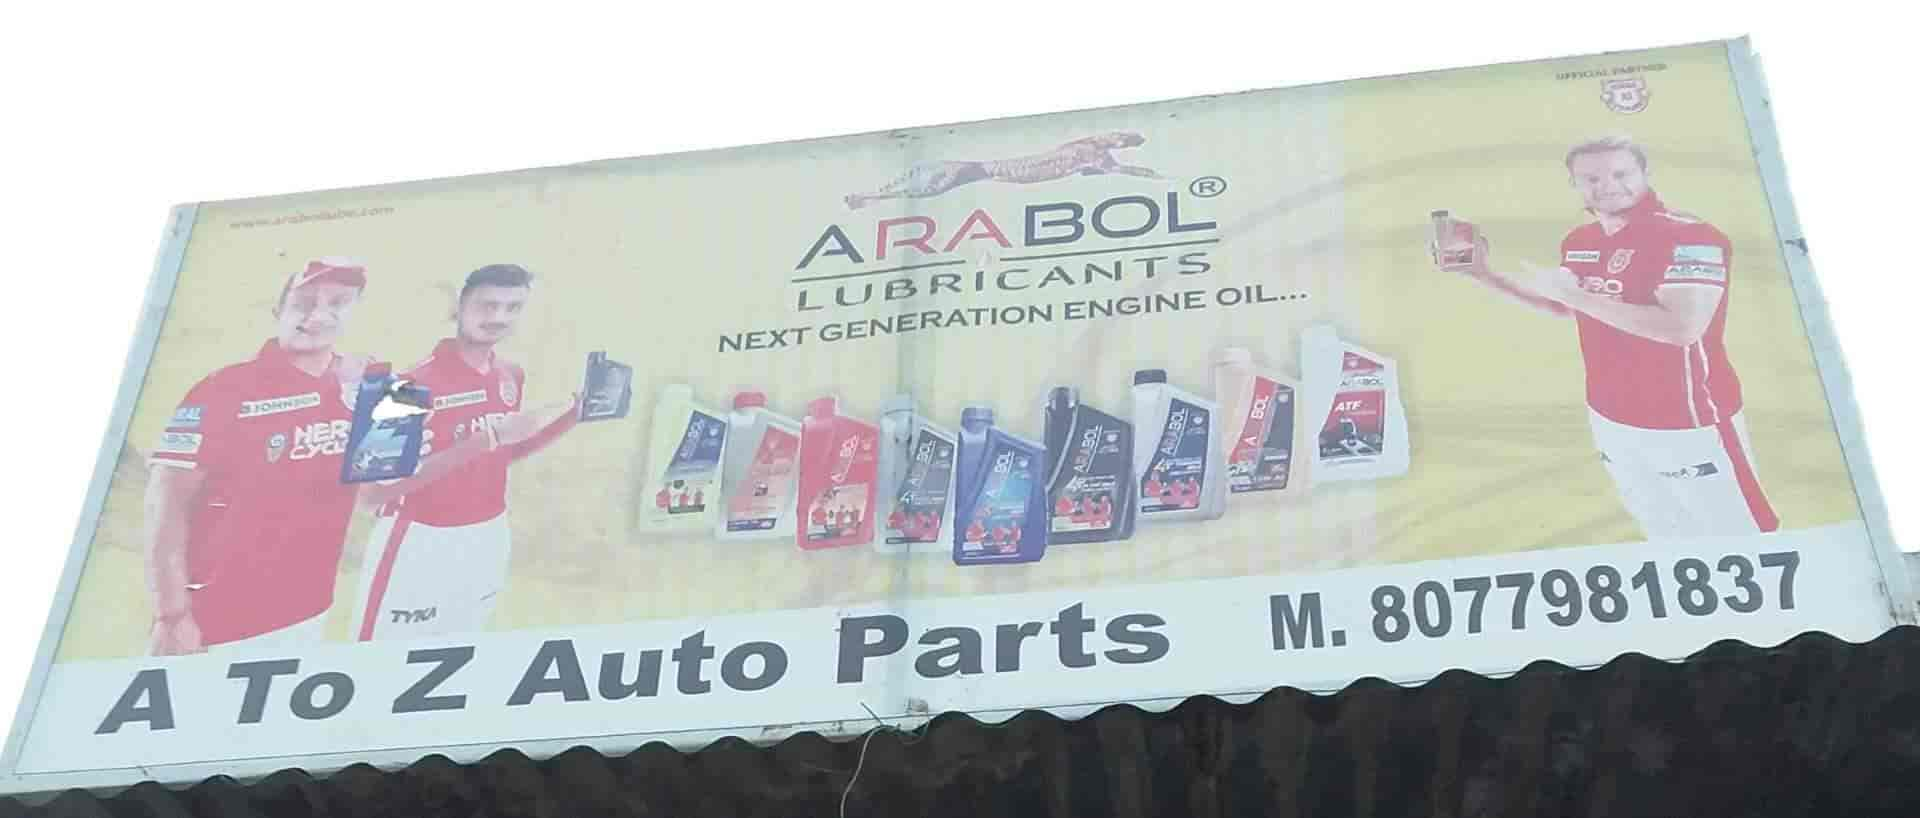 A To Z Auto Parts >> A To Z Auto Parts Air Force Station Bareilly Motorcycle